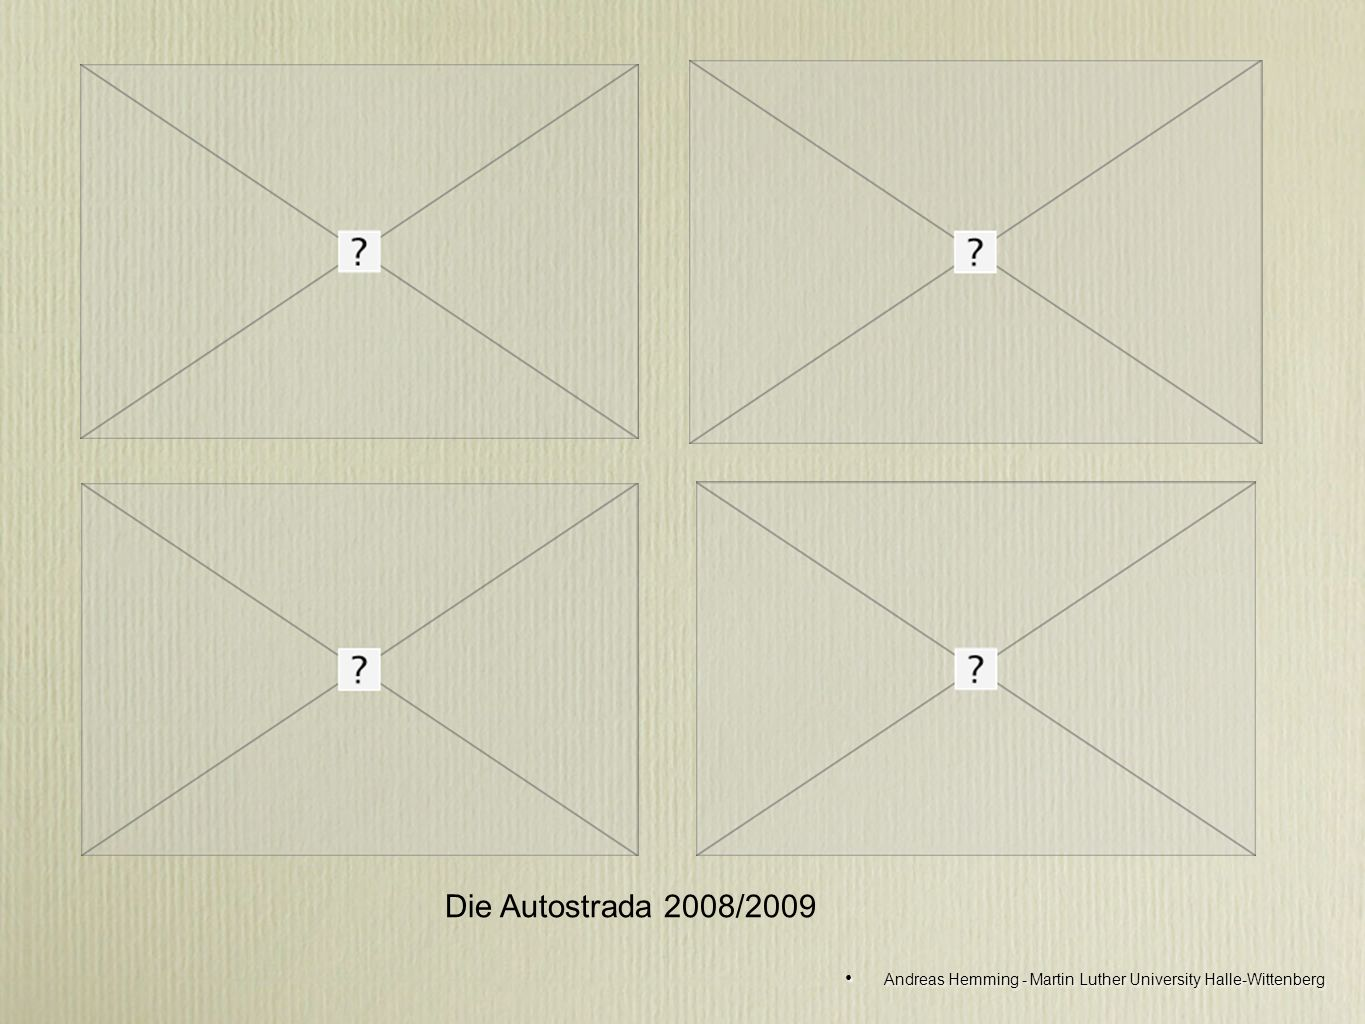 Die Autostrada 2008/2009 Andreas Hemming - Martin Luther University Halle-Wittenberg